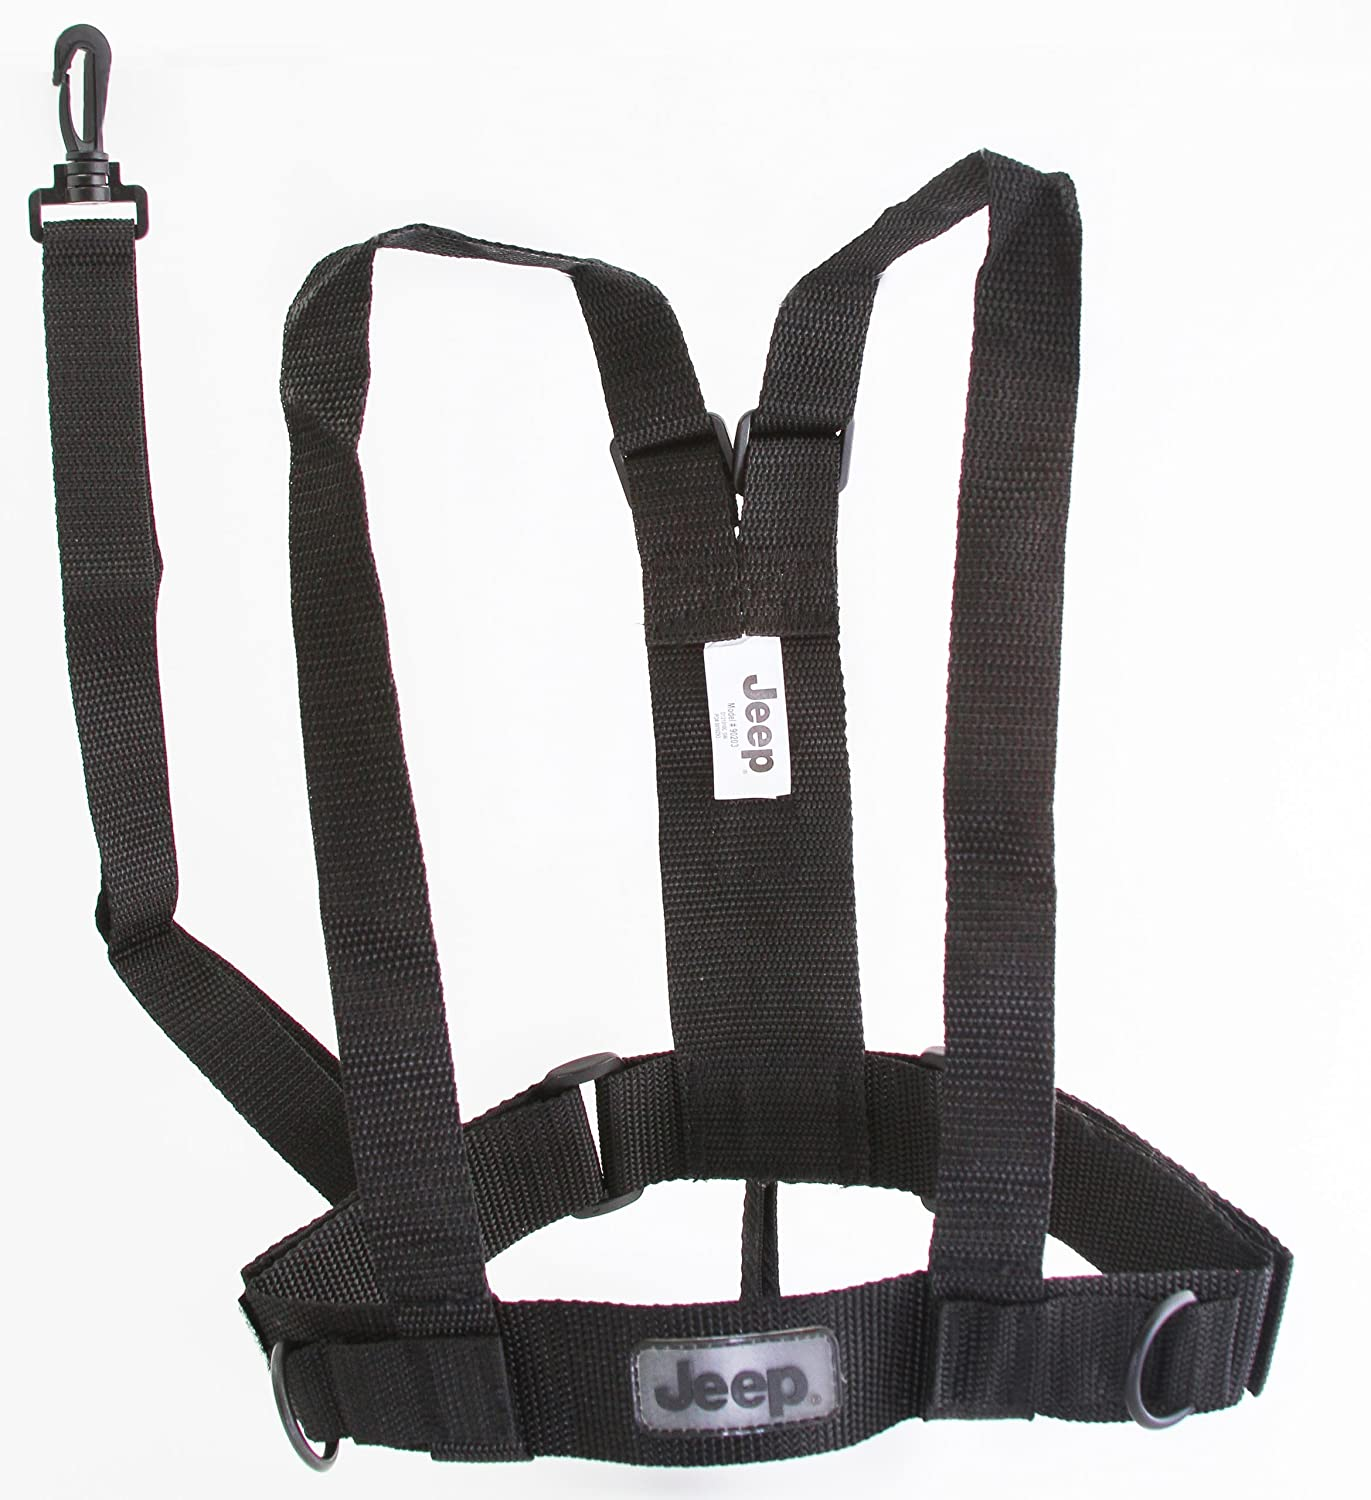 Jeep 2-in-1 Safety Harness